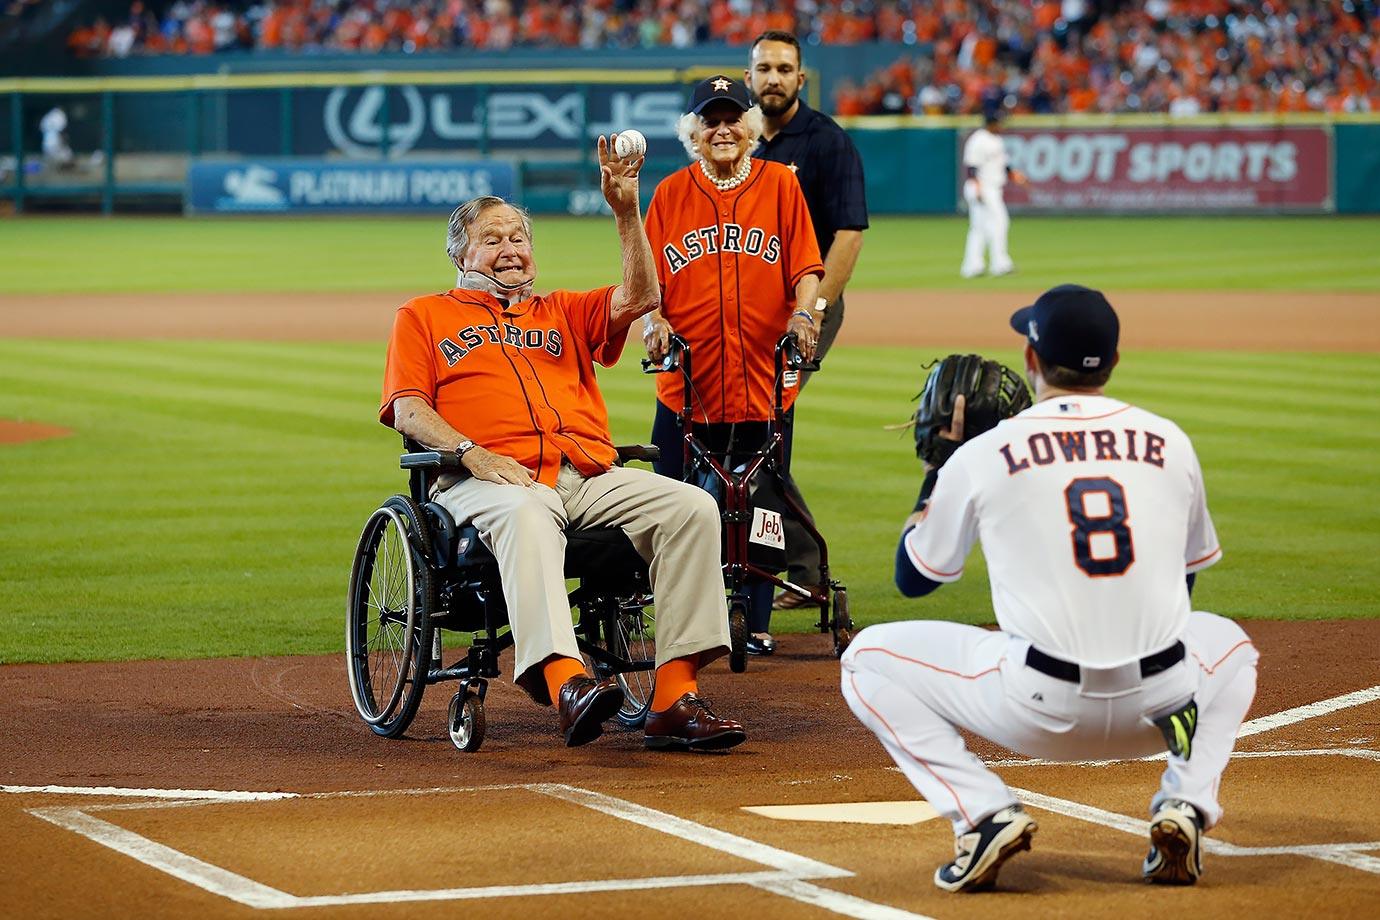 October 11, 2015: Houston Astros vs. Kansas City Royals at Minute Maid Park in Houston —American League Division Series, Game 3